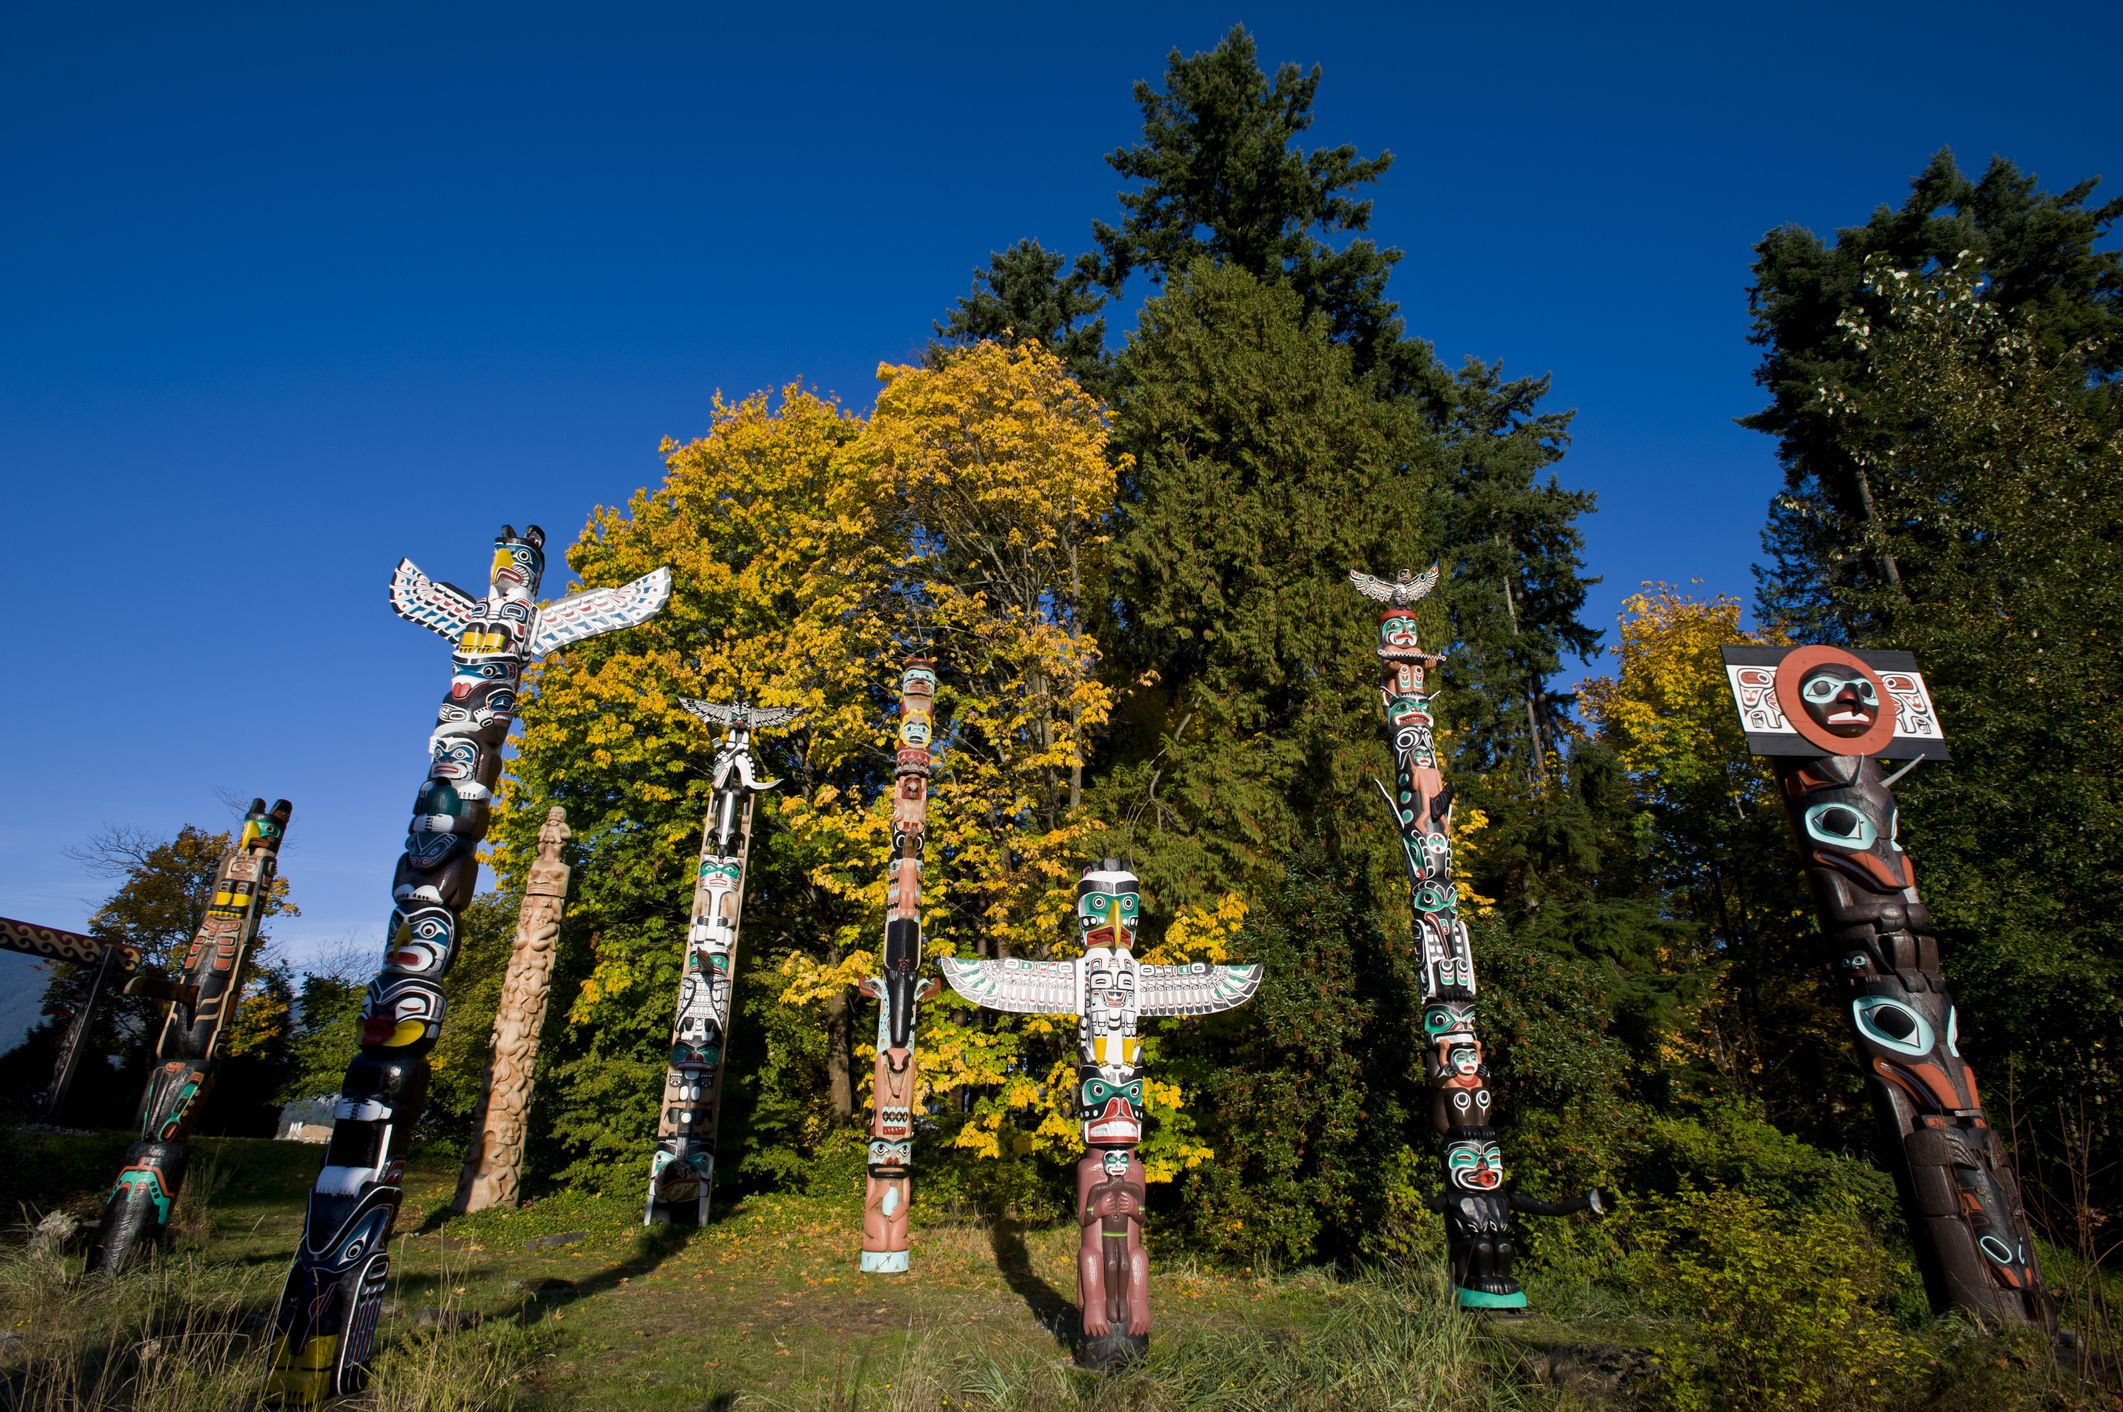 A Guide To Experiencing The Totem Poles At Stanley Park